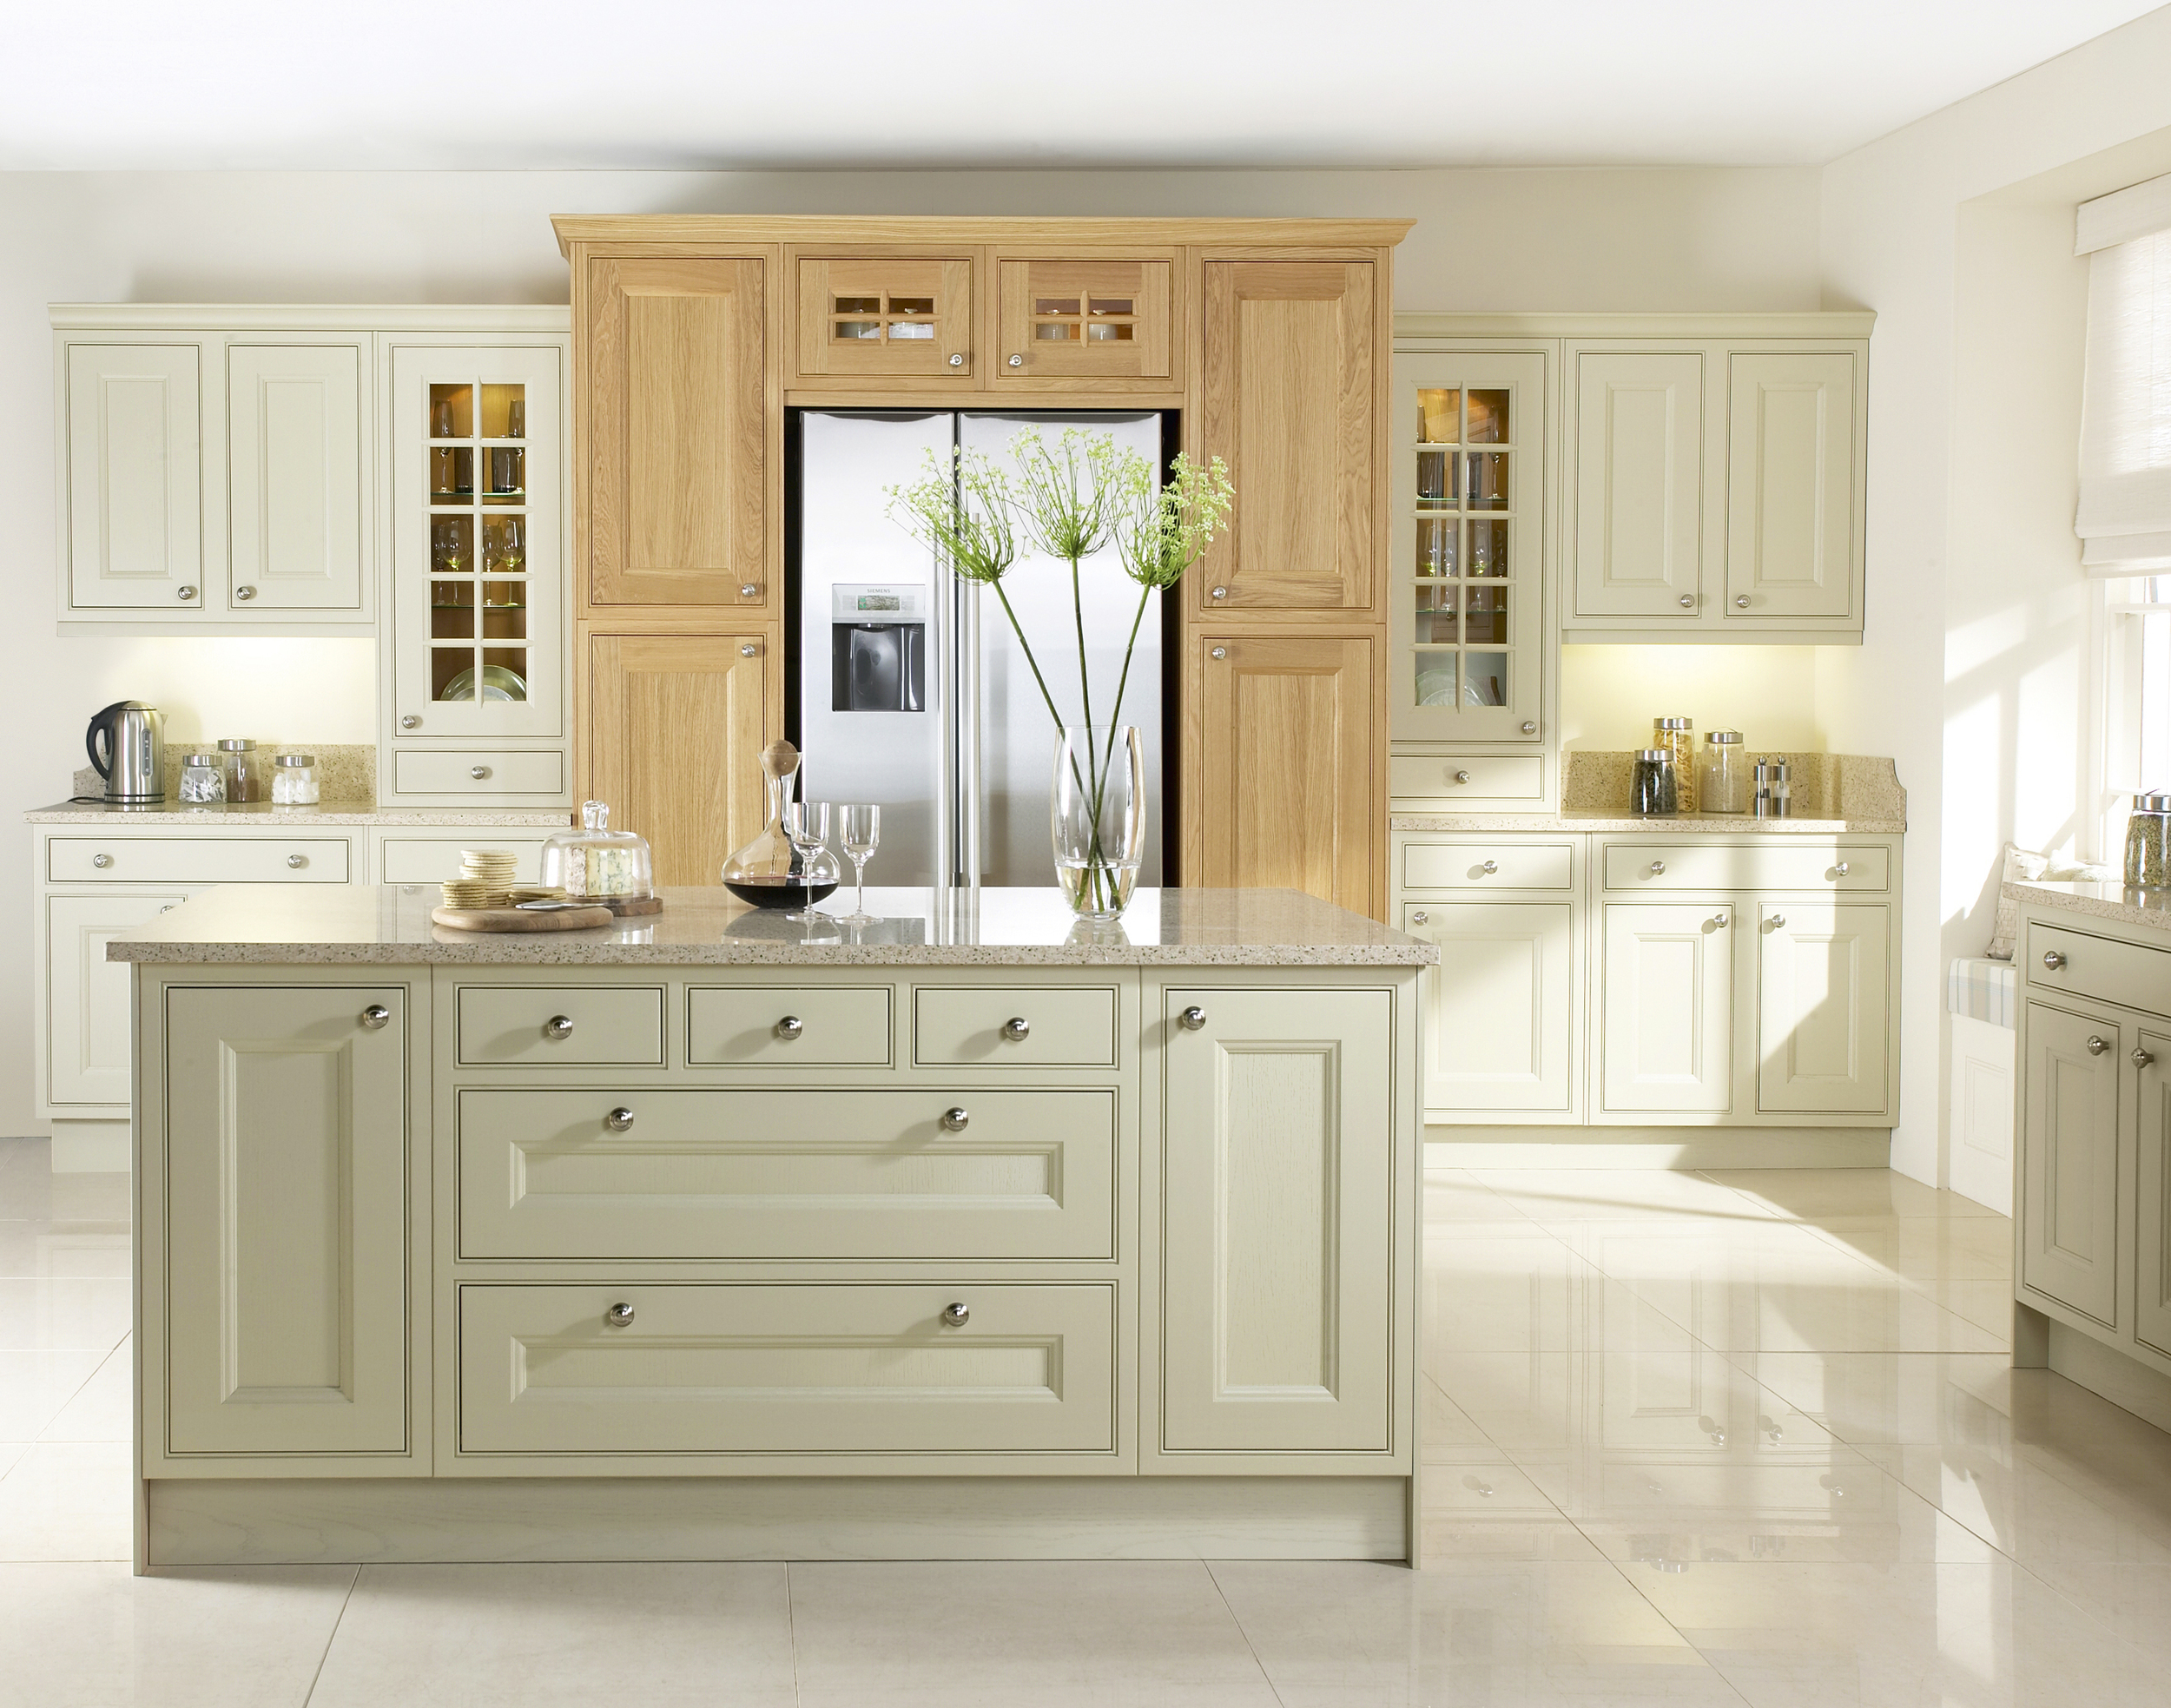 kitchen ideas for two toned kitchen cabinets Two tone kitchen